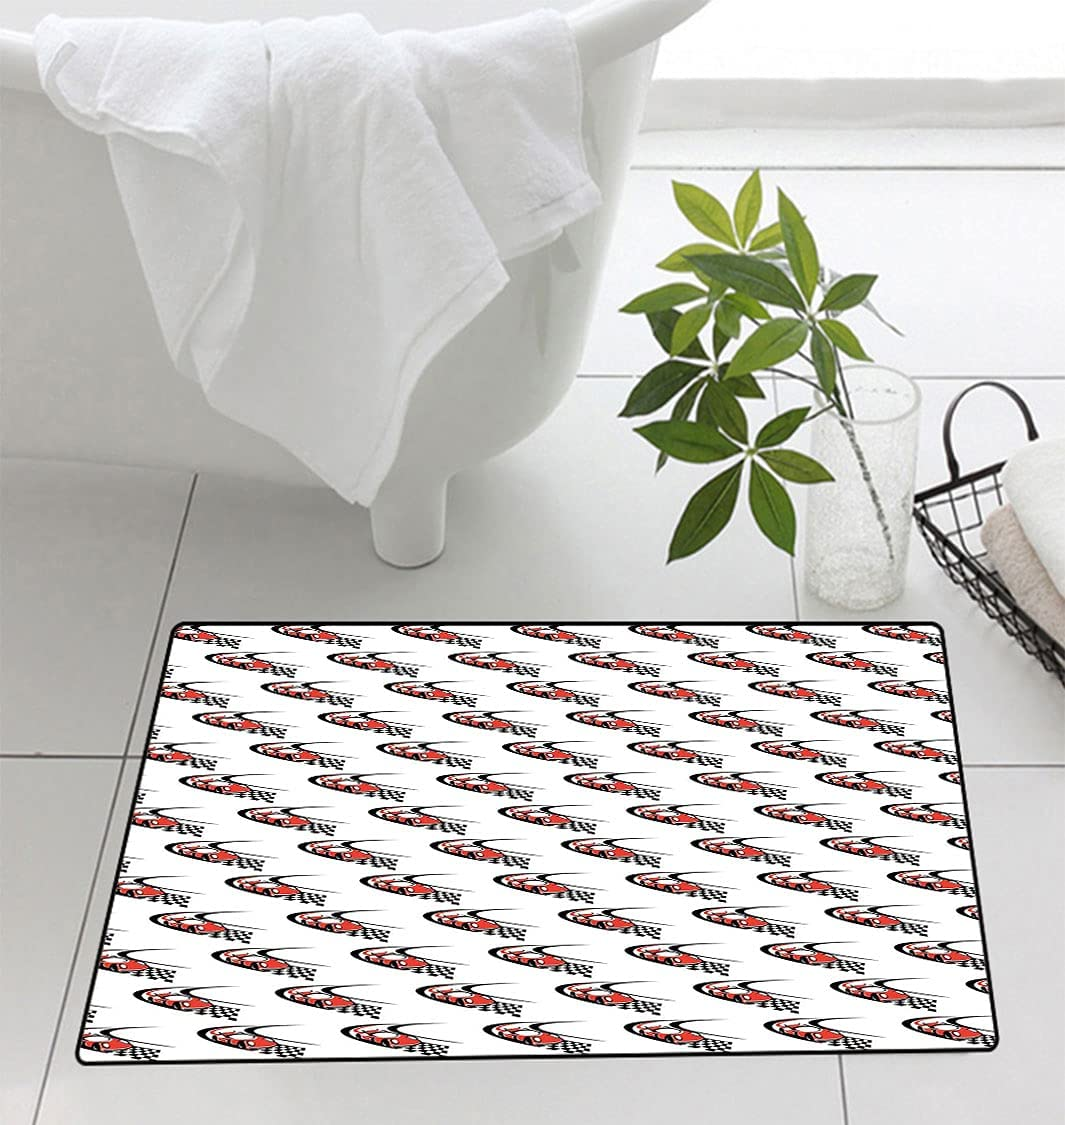 Cars Printed Floor mat Bath Speeding Fast Max 63% OFF on Red Race a Ranking integrated 1st place Car